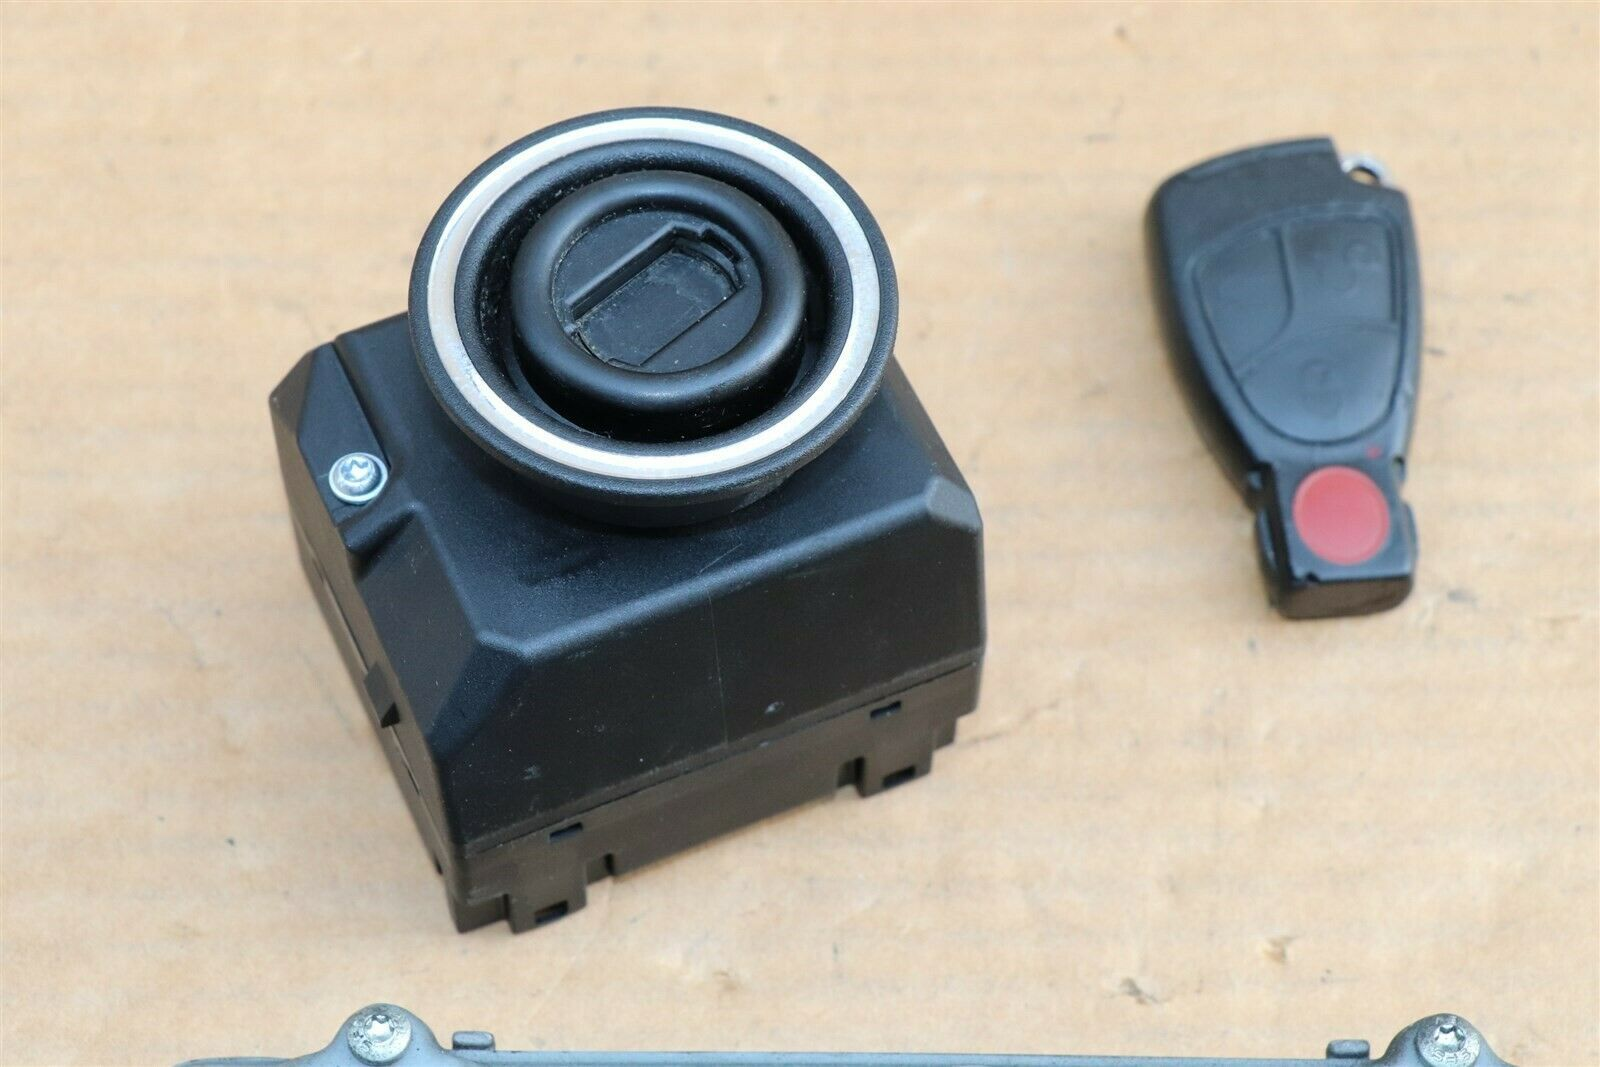 Mercedes Ignition Start Switch Module & Key Fob Keyless Entry Remote 2095451908